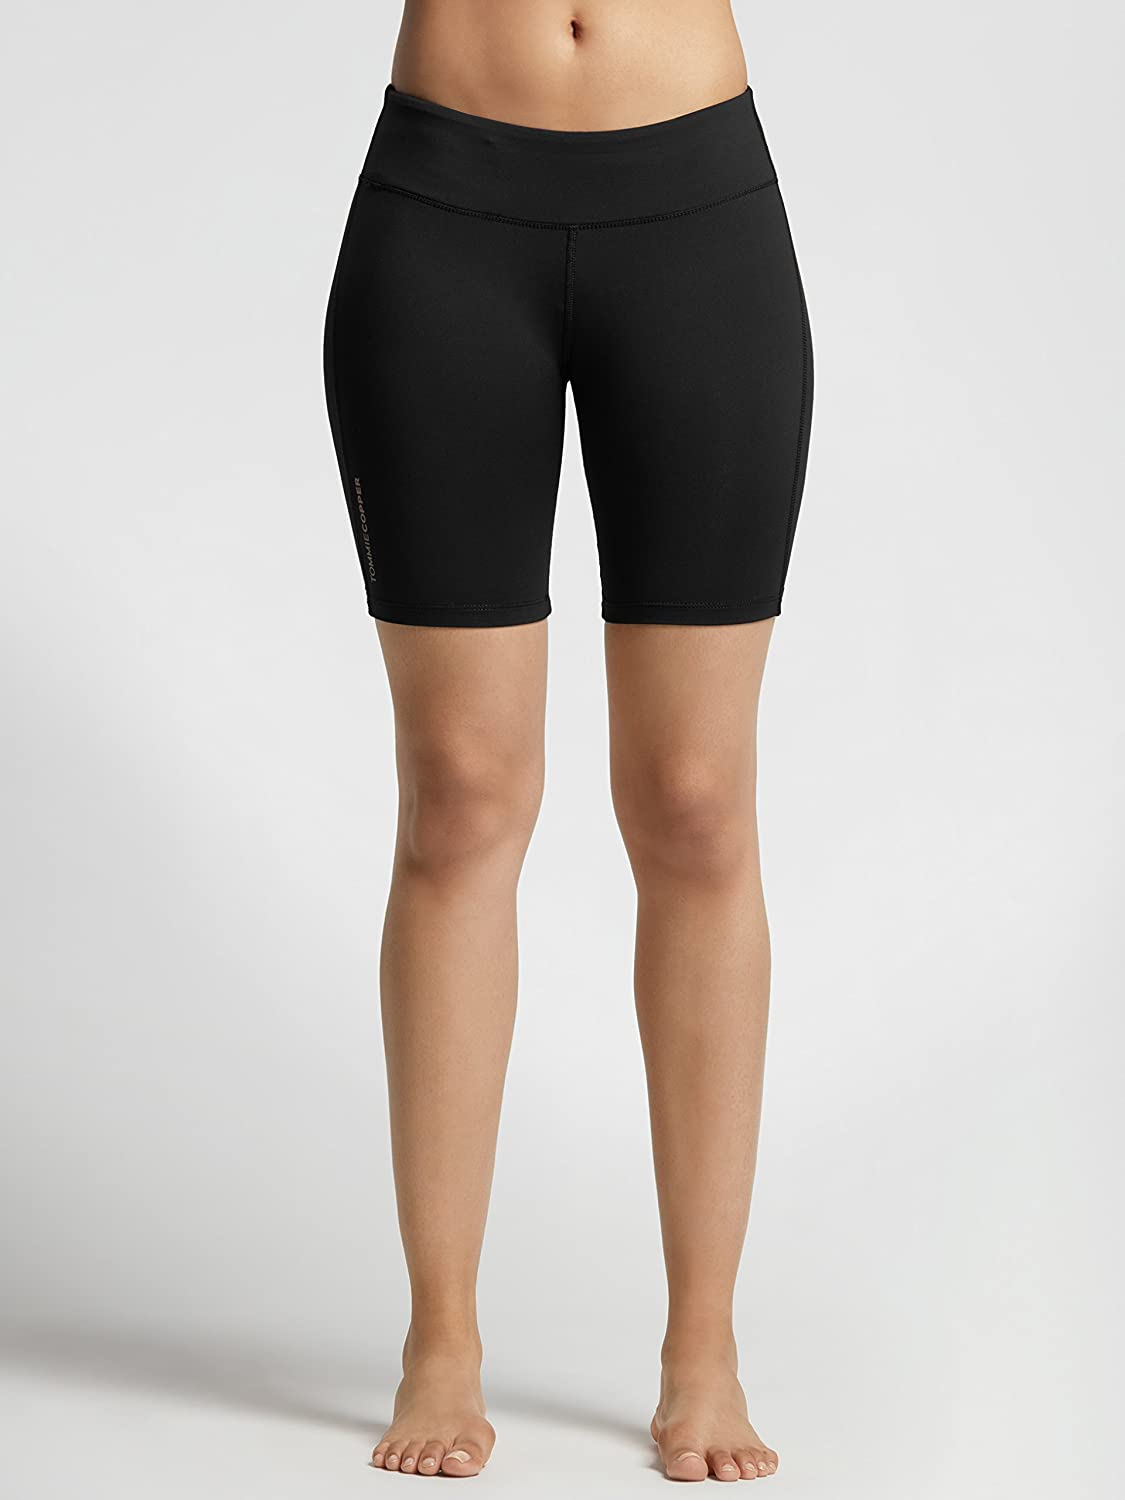 Tommie Copper Womens Performance Compression Shorts